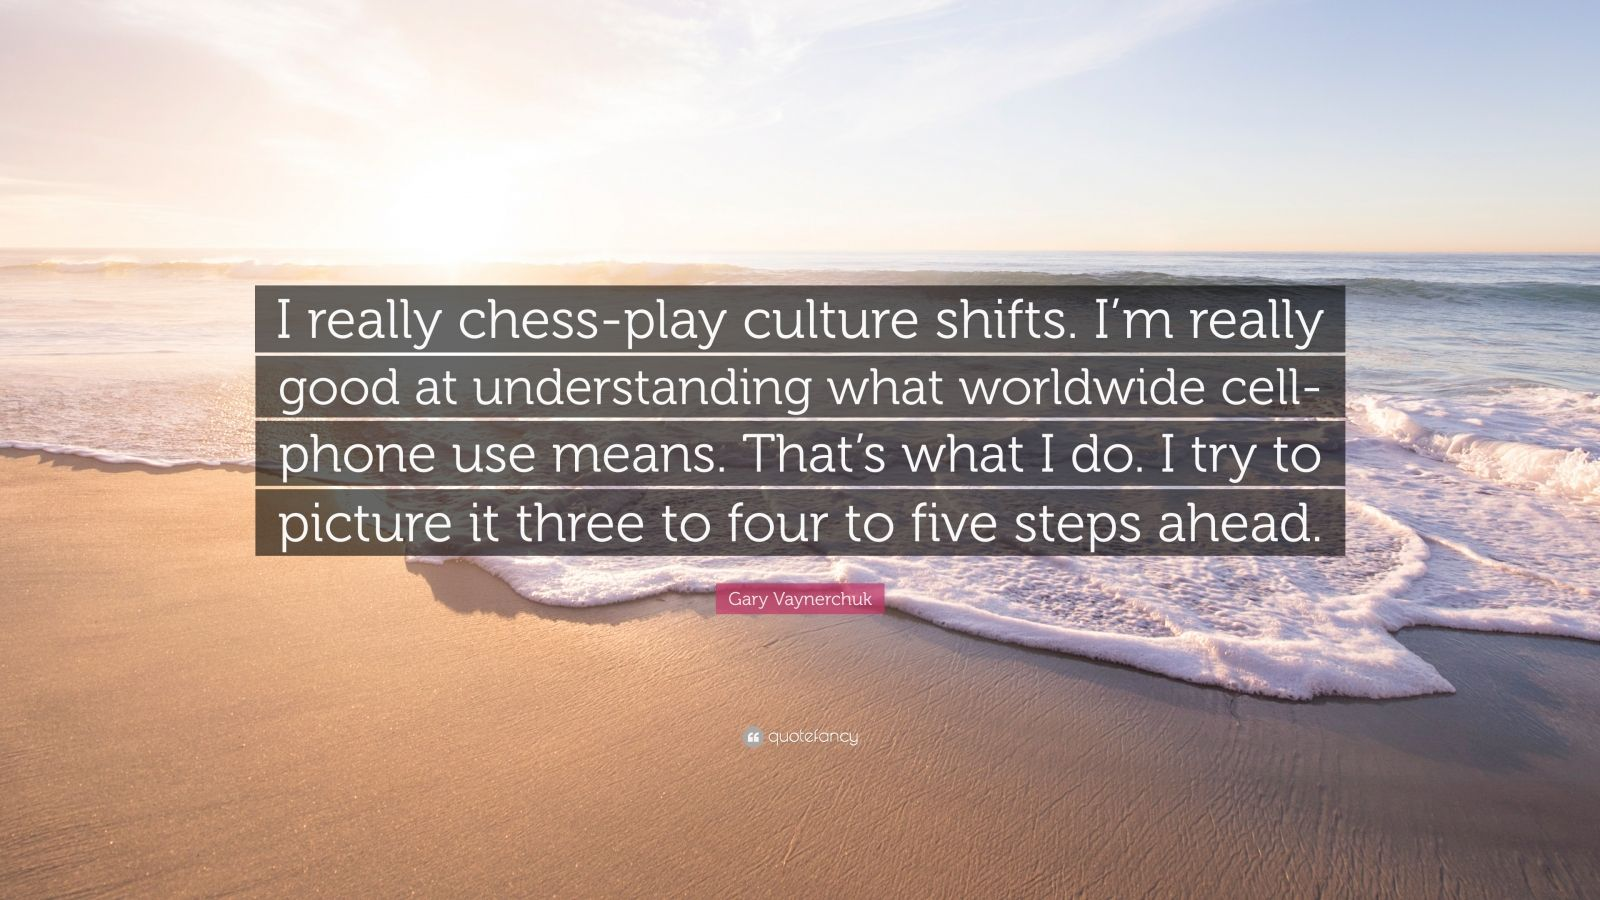 """Gary Vaynerchuk Quote: """"I really chess-play culture shifts. I'm really good at understanding what worldwide cell-phone use means. That's what I do. I try to picture it three to four to five steps ahead."""""""